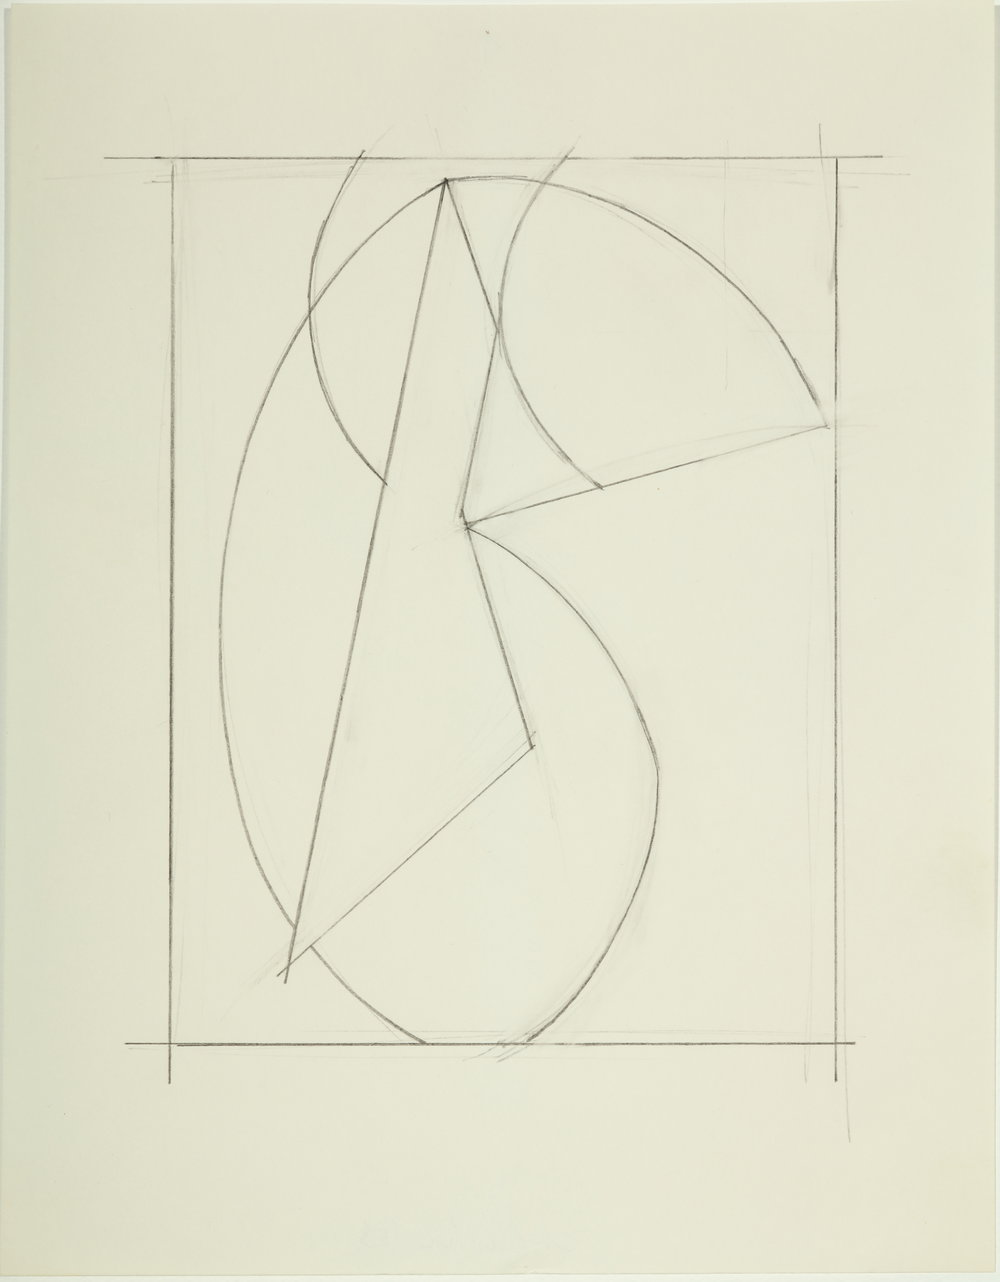 Untitled,  1983         Pencil on paper 11H x 8.5W inches unframed $2,500 unframed $2,725 framed